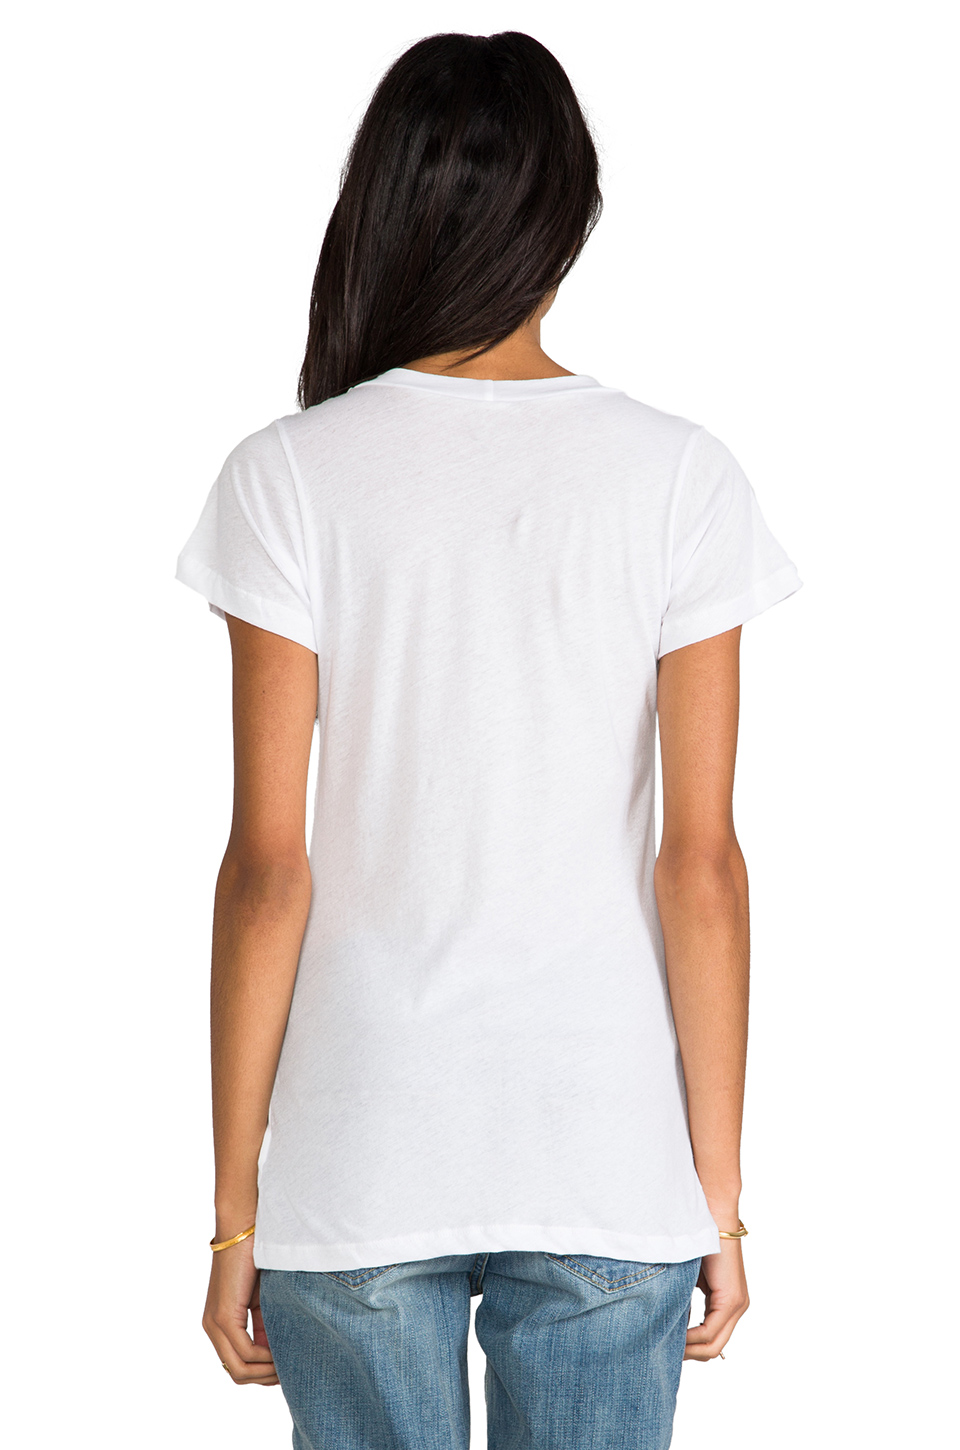 Lna crew neck tee in white from revolveclothing.com